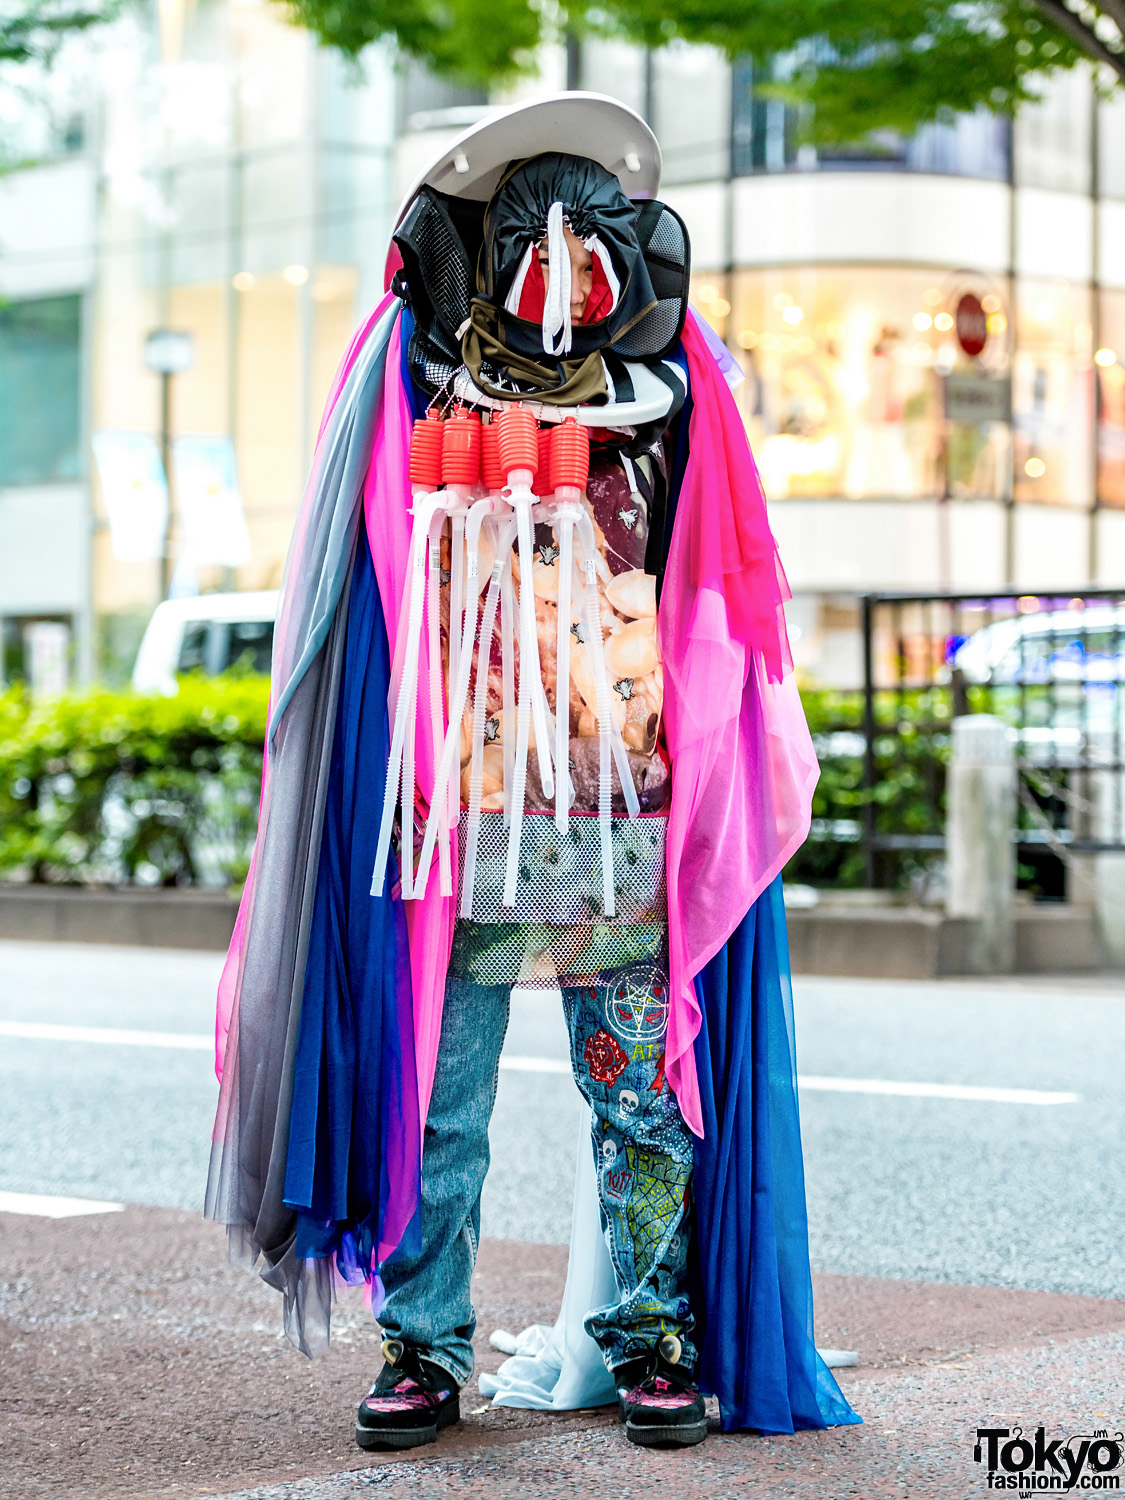 Conceptual Japanese Street Fashion W Statement Headpiece